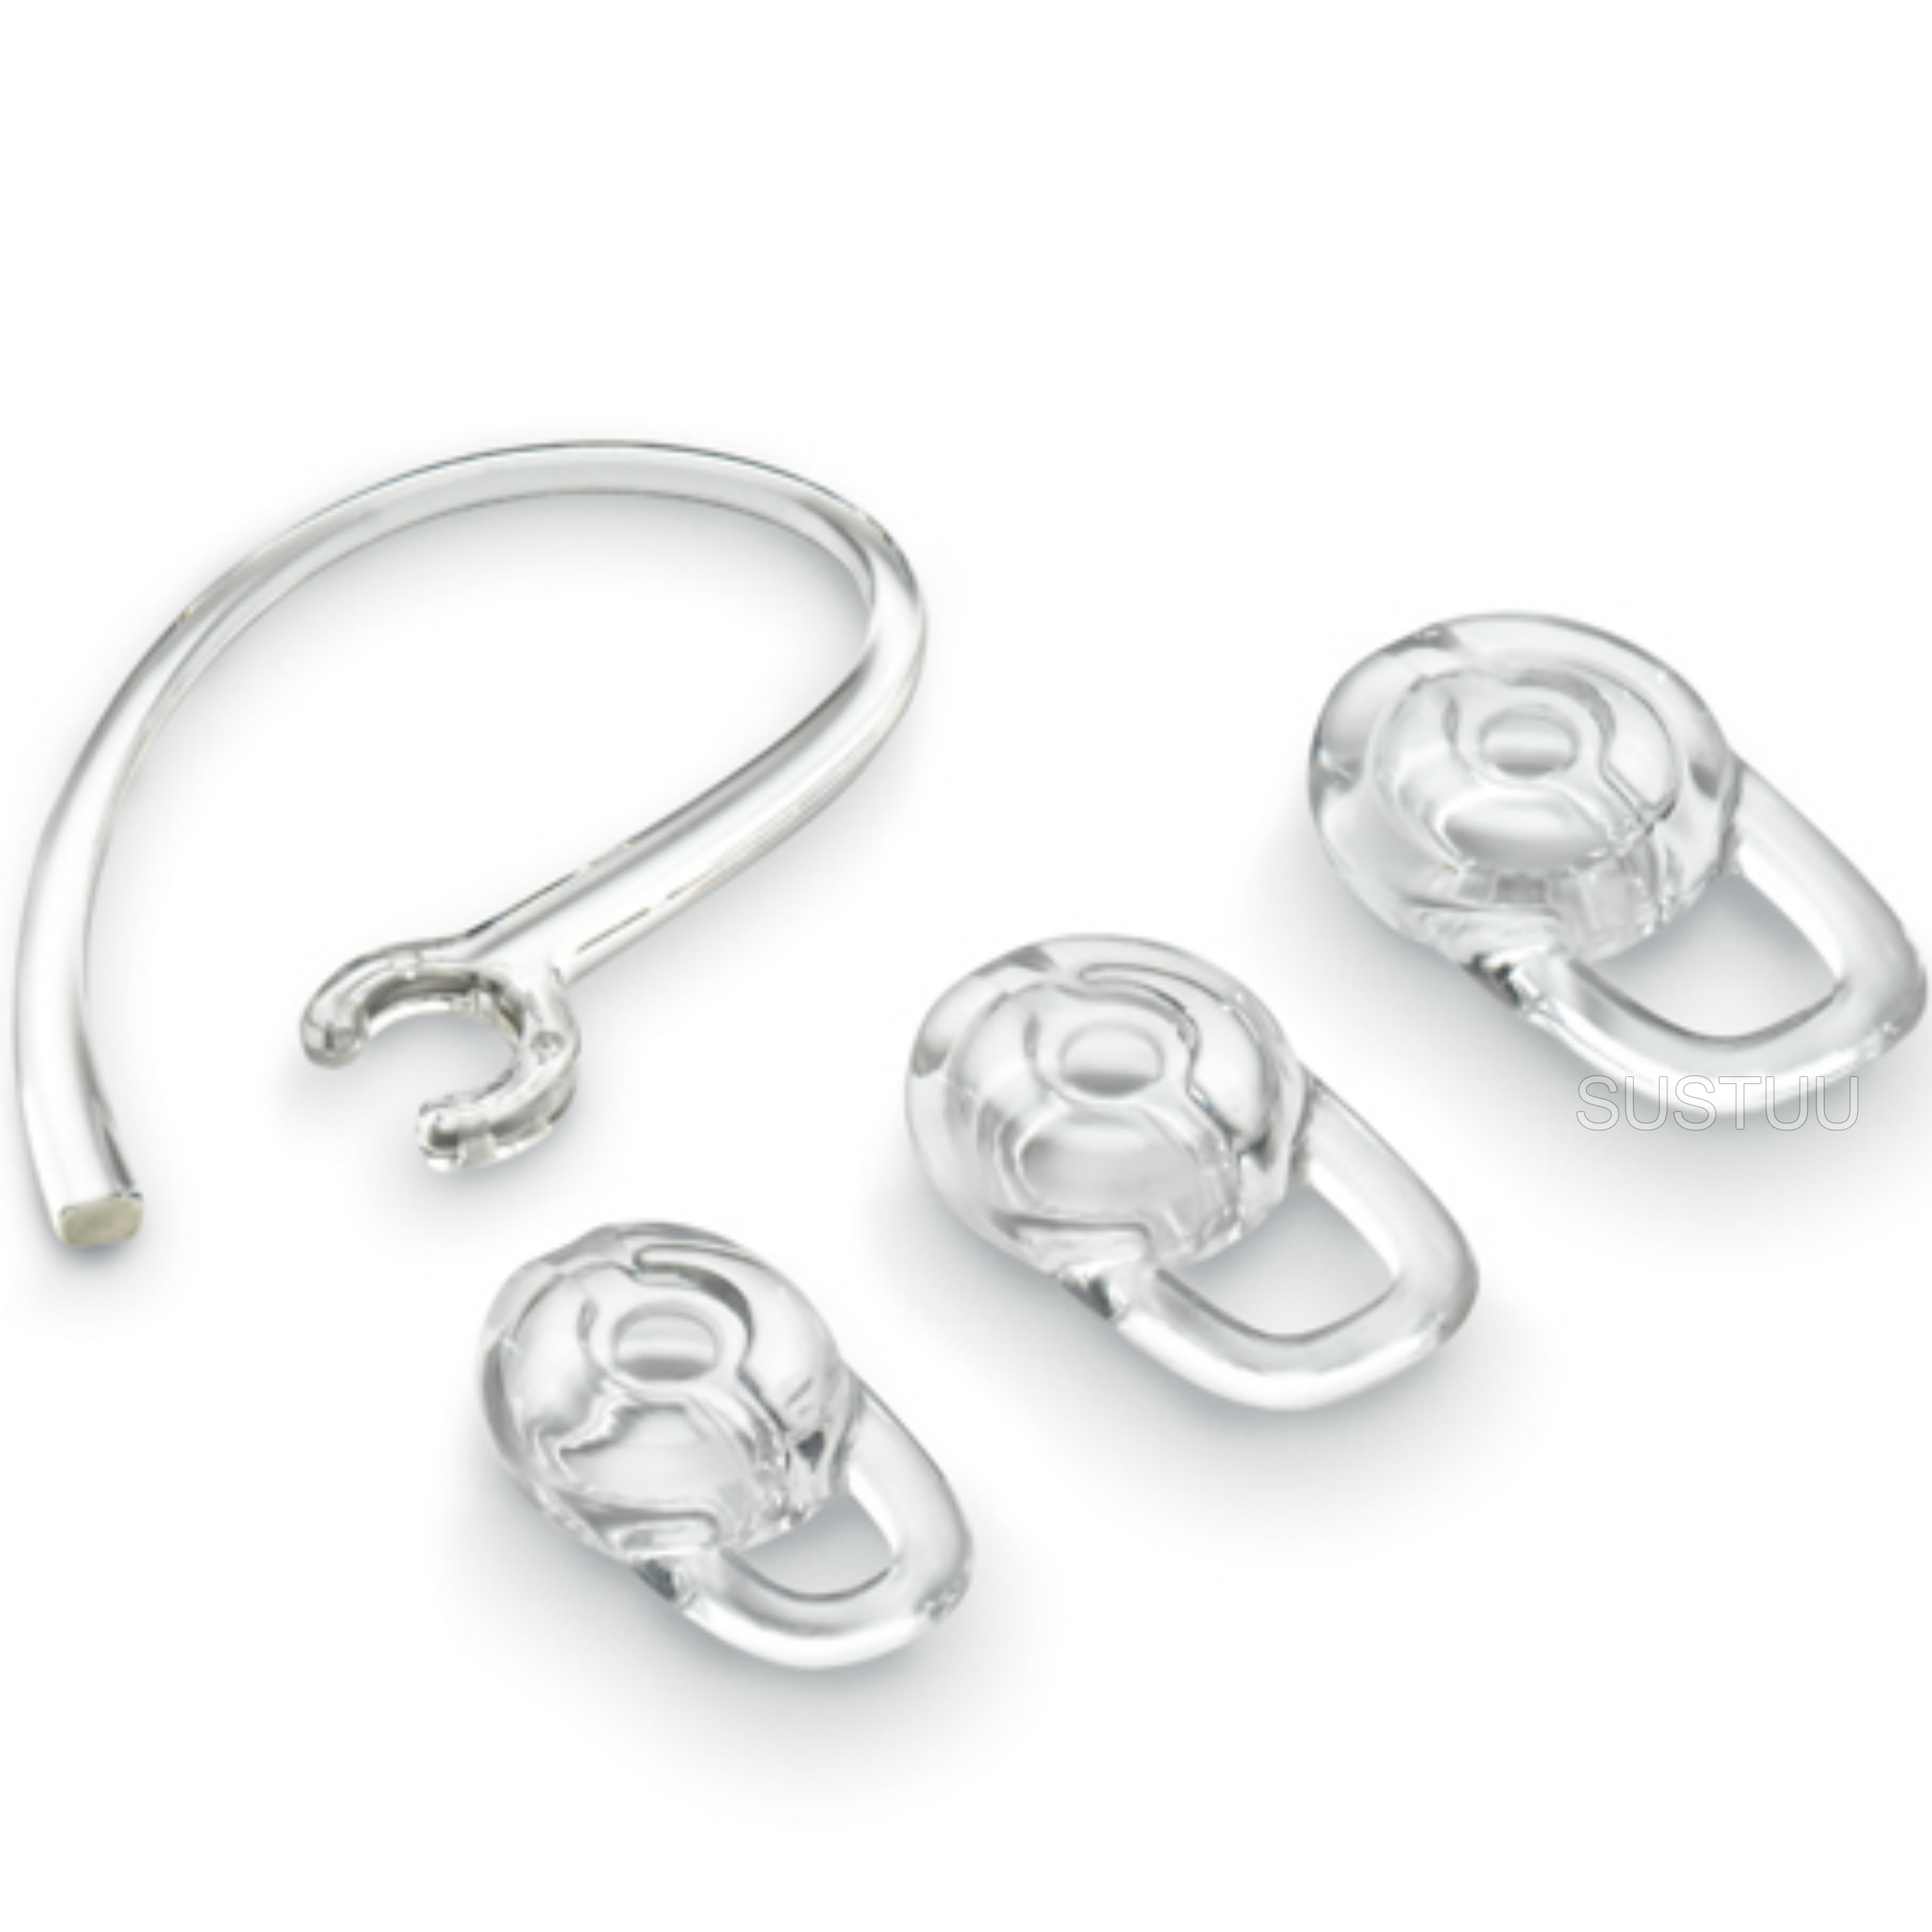 Plantronics Spare Gel Earloop/ Bud Kit | Size: S/ M/ L | For 925 975 M100 MX100 M25 M55BT Headset